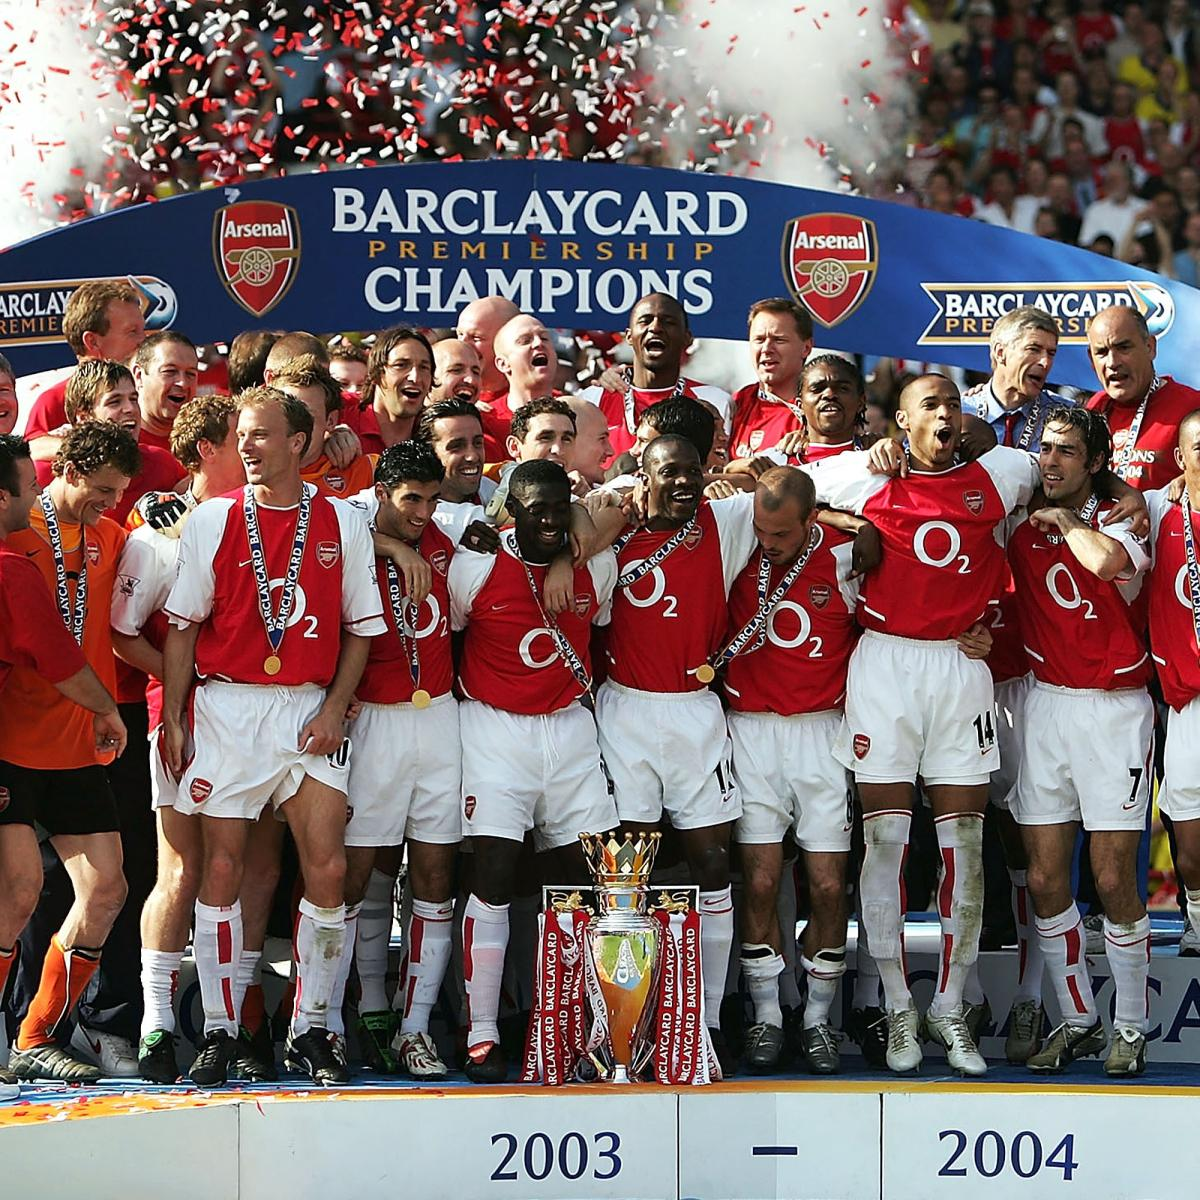 Arsenal S Invincibles Where Are They Now Bleacher Report Latest News Videos And Highlights